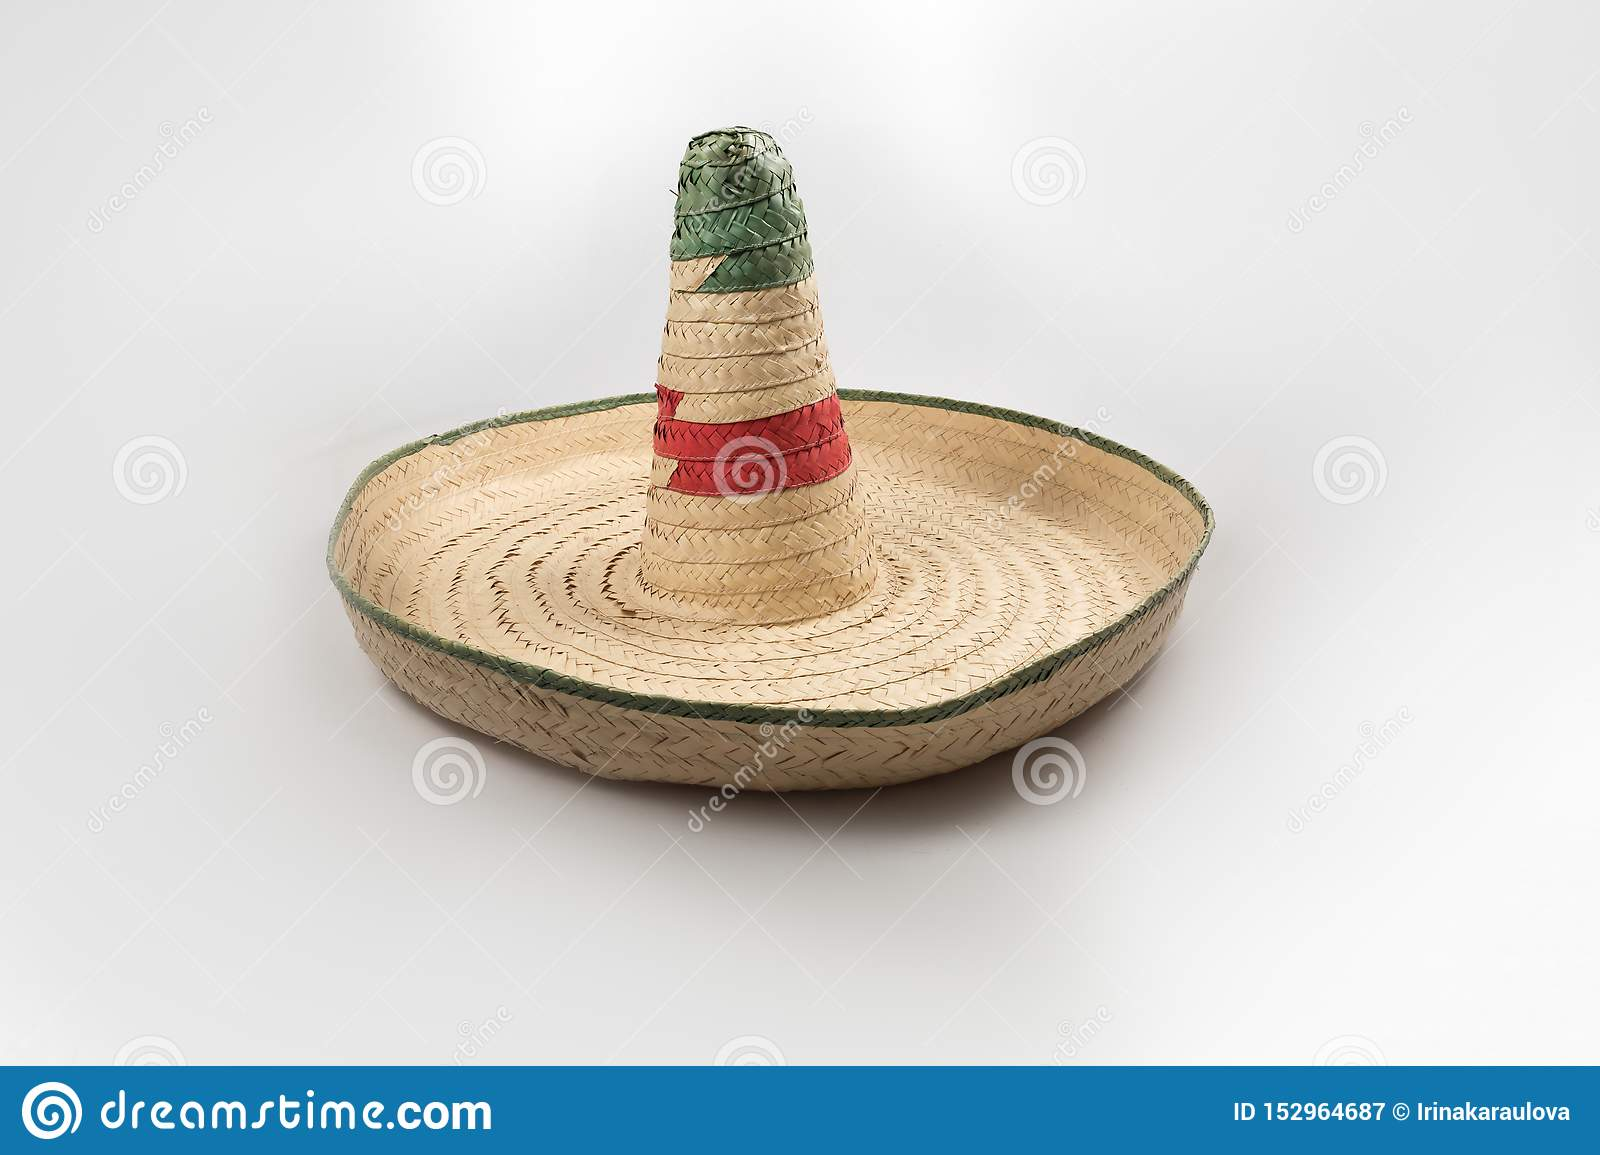 The straw Mexican sombrero hat on white background isolated